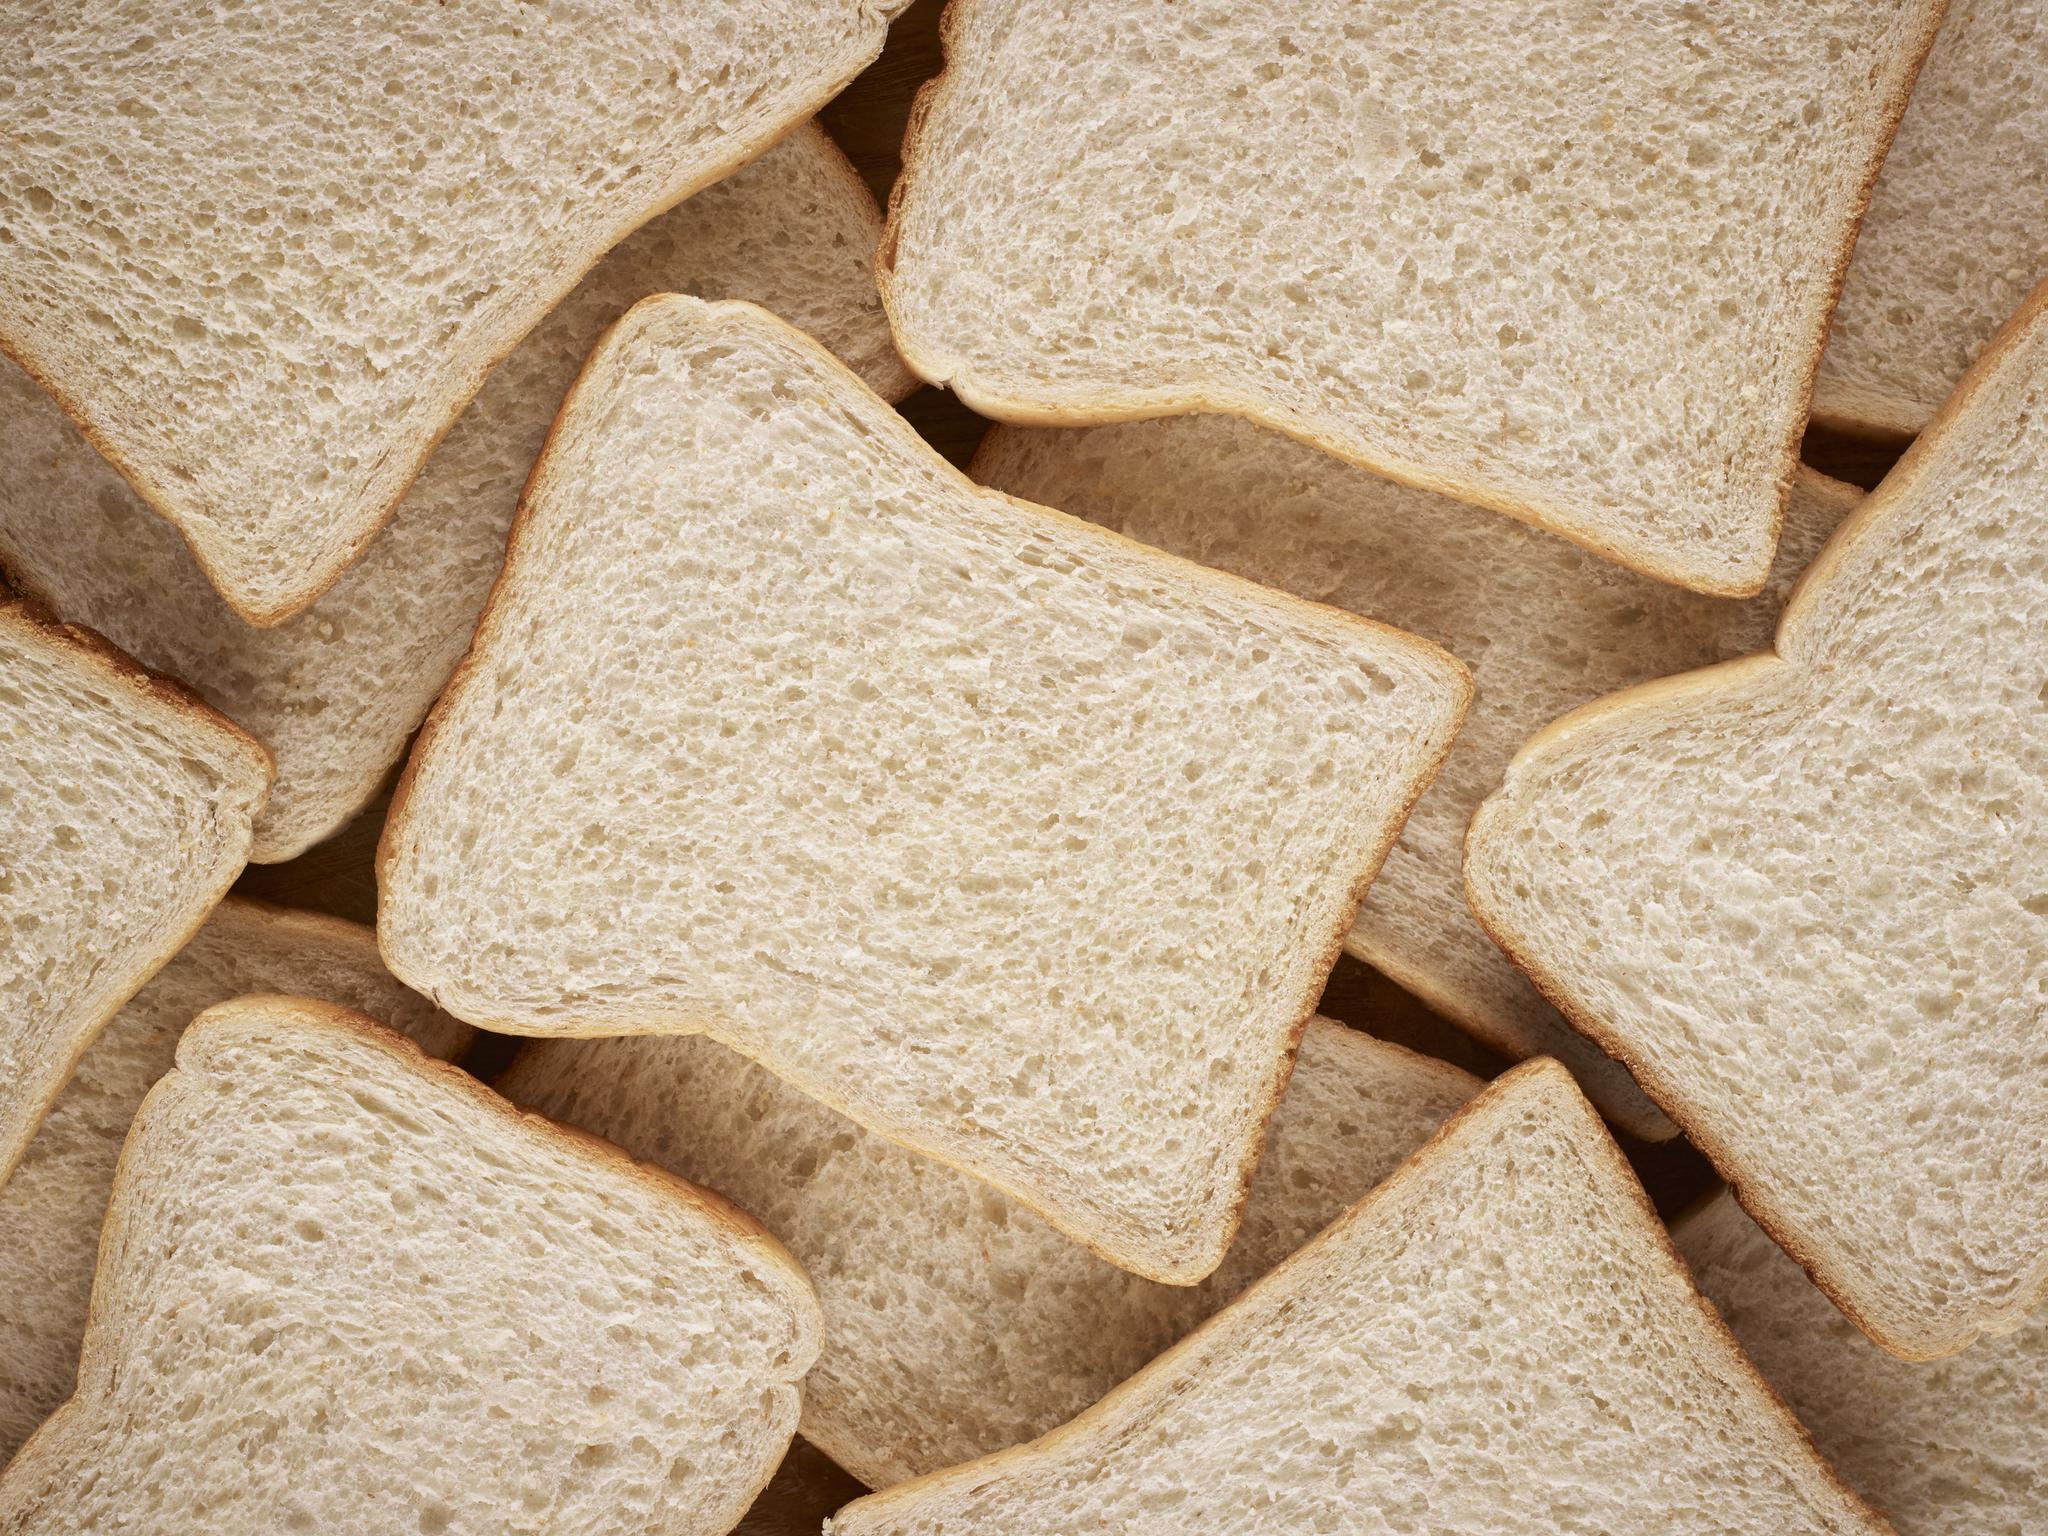 Which kind of bread may be best for you can be predicted by the bacteria in your gut.